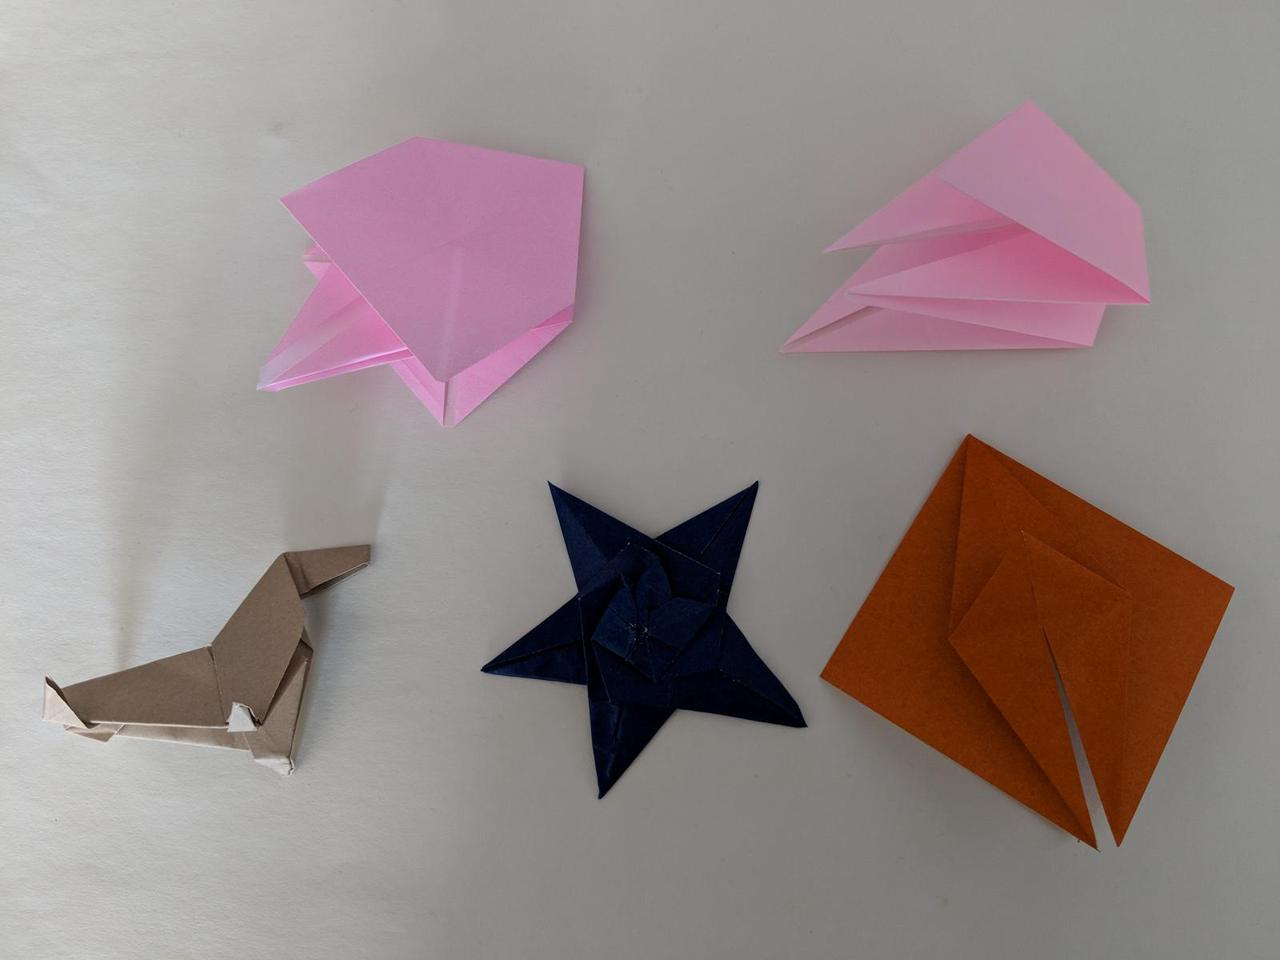 /images/itp/paper_engineering/week6/origami_experiments.jpg